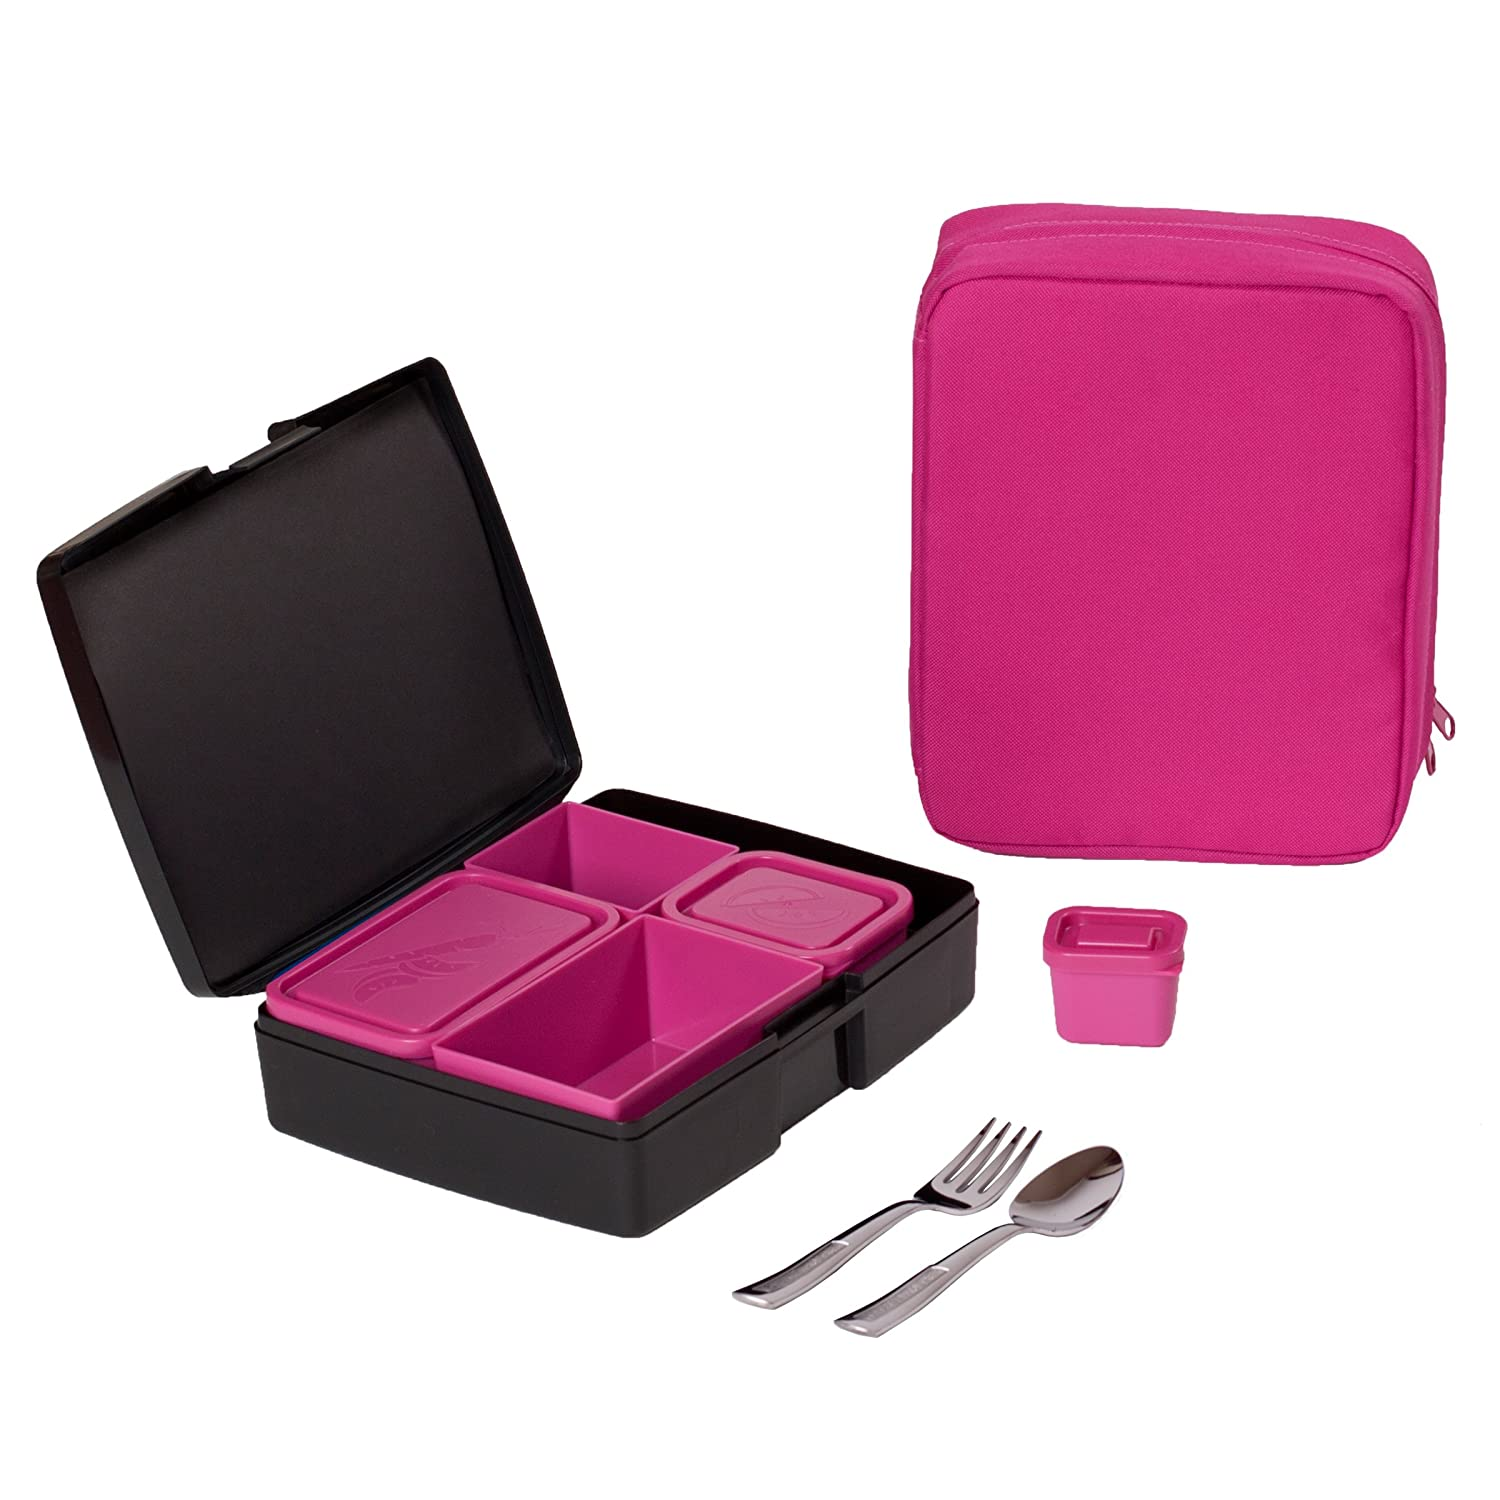 Bento Lunch Box Combo - Includes Bento Box, Insulated Sleeve and Utensils - Perfect for School and Travel - Black/Pink